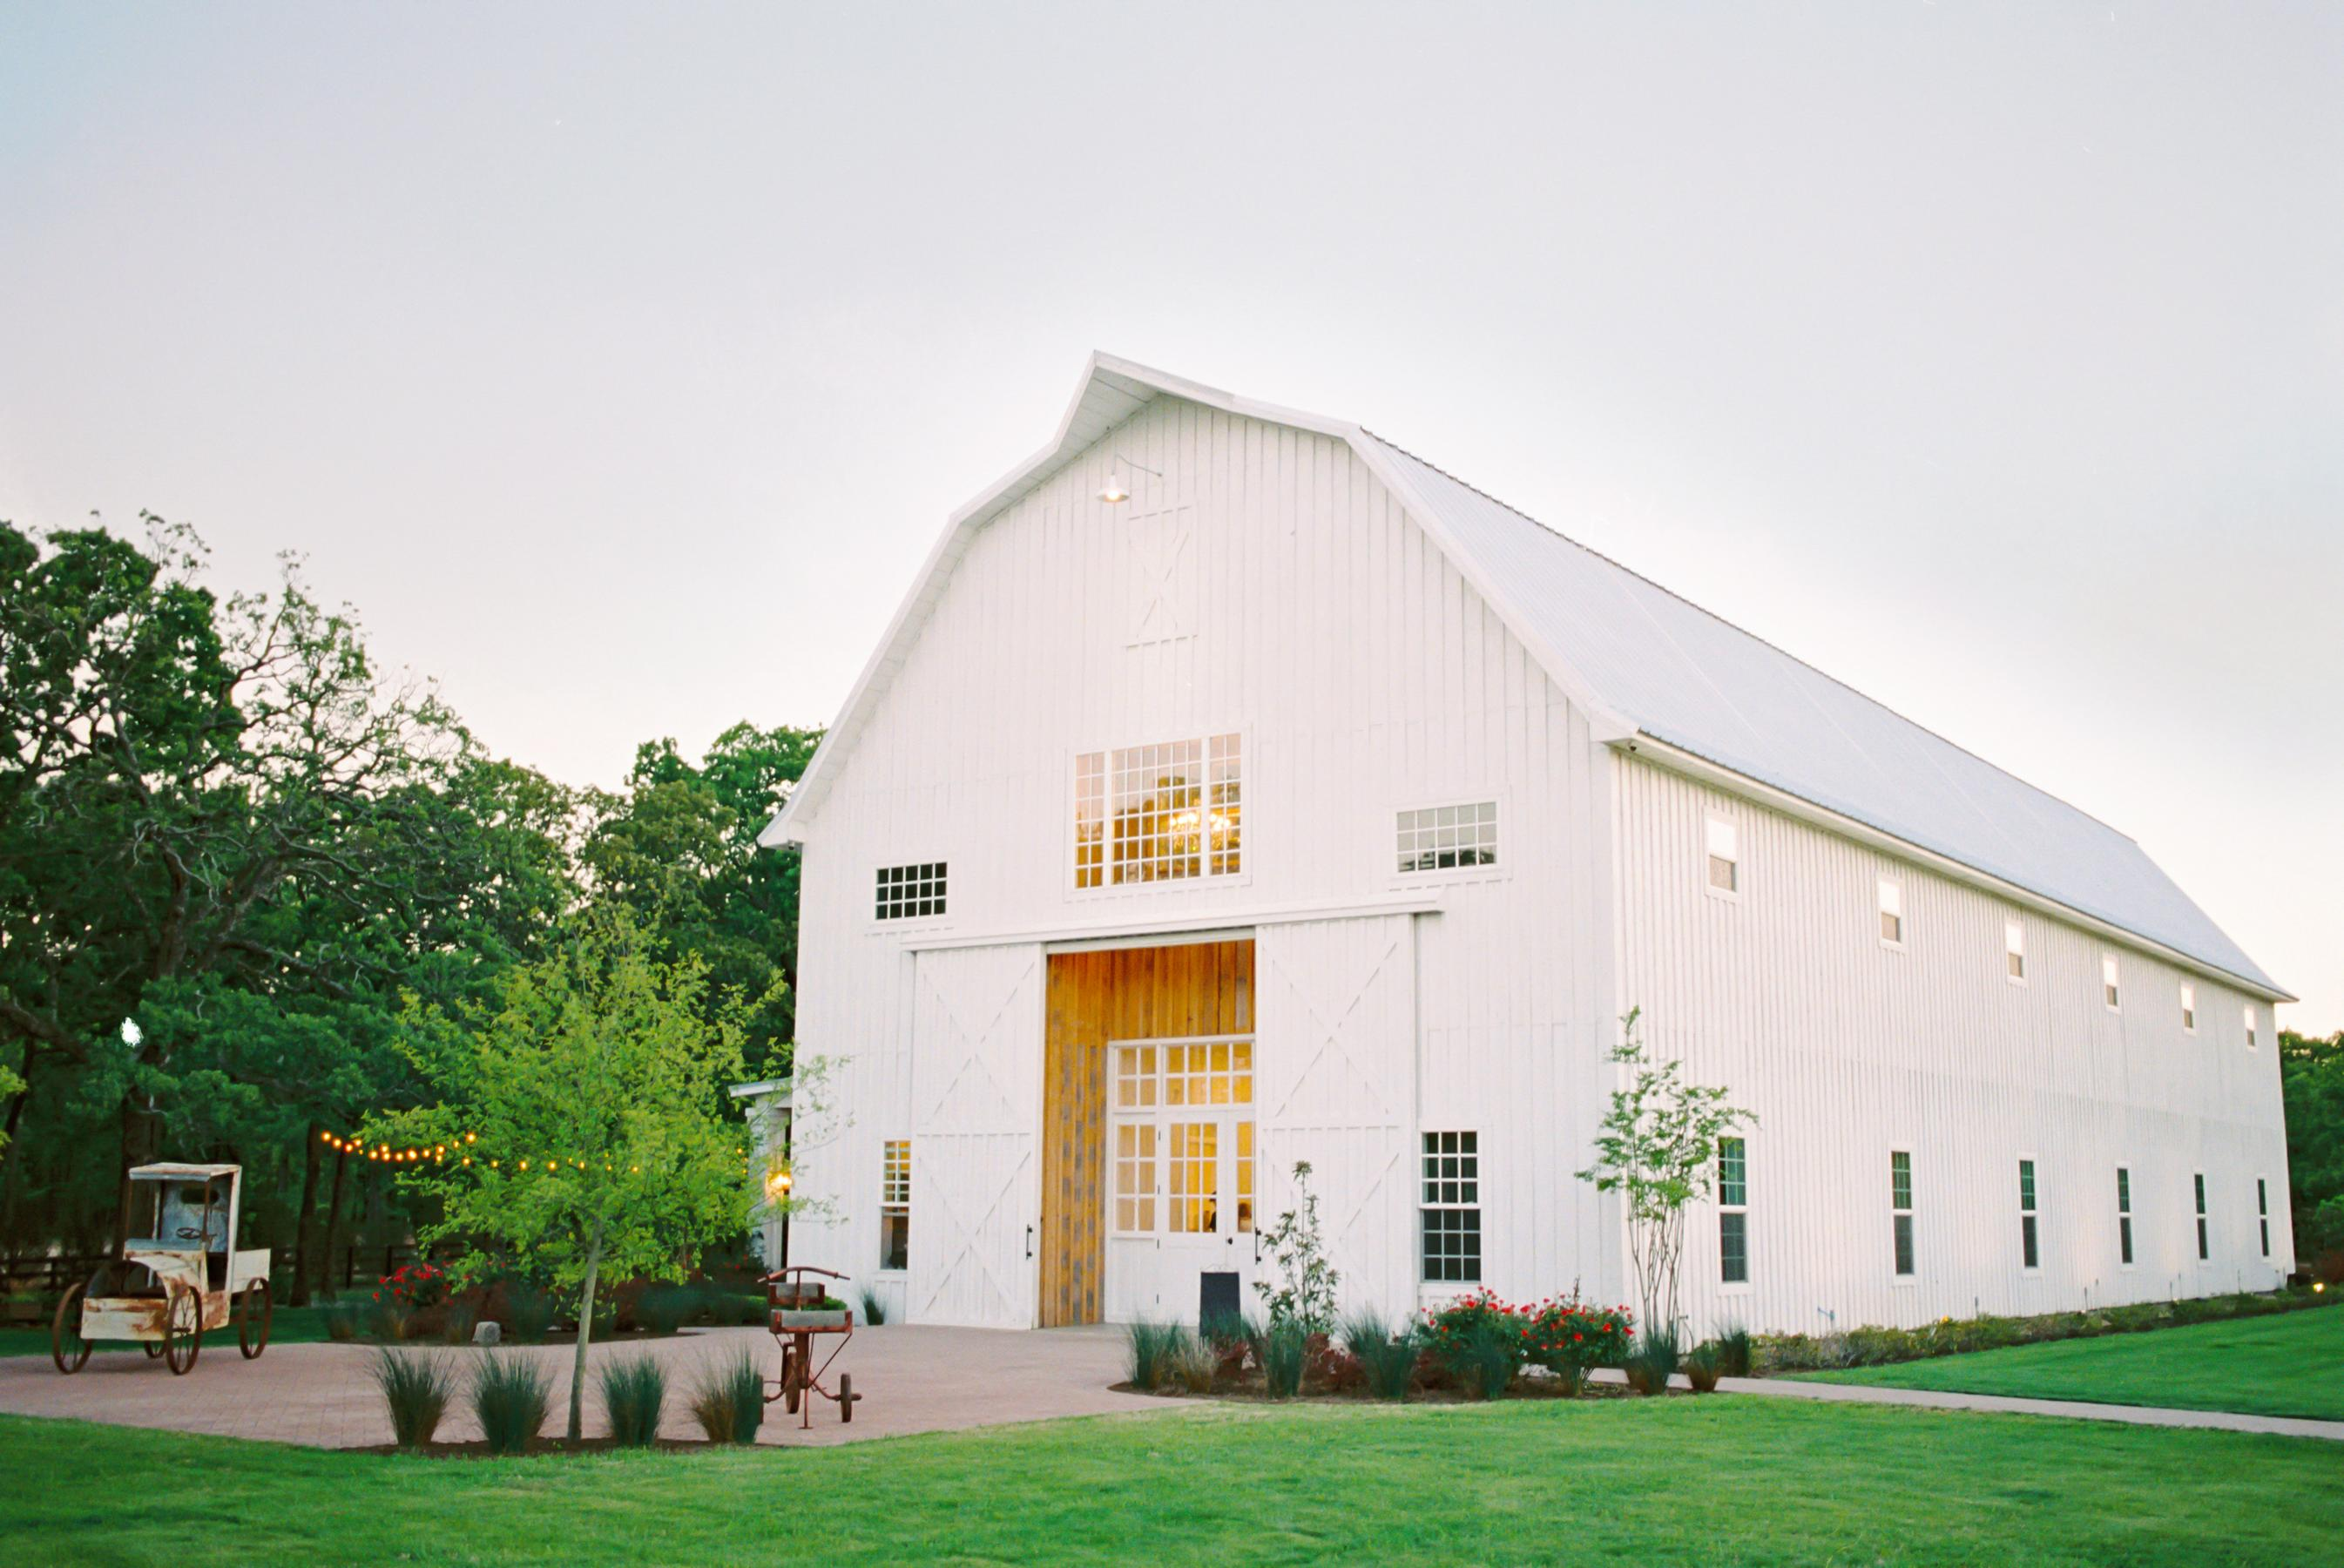 01_02_RusticWeddingVenues__TheWhiteSparrowBarn_Kaytee_Matthew_Wedding_0182 1